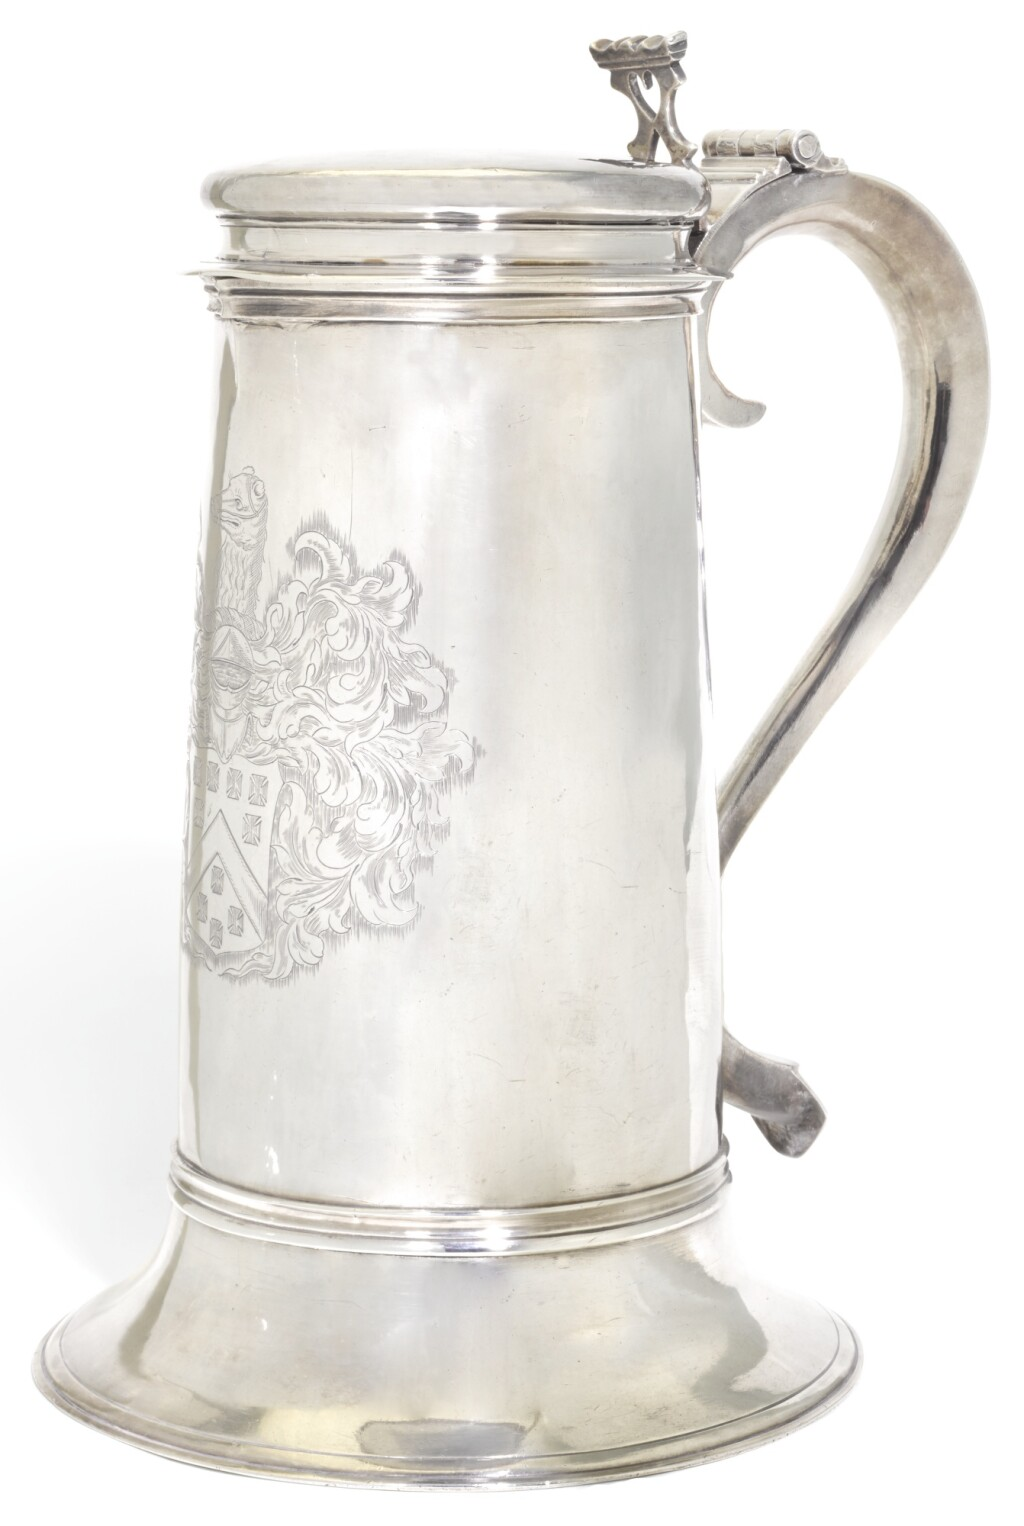 A LARGE CHARLES II SILVER FLAGON, MAKER'S MARK S BELOW A CROWN, ATTRIBUTED TO ROBERT SMYTHIER (OR SMITHYER), LONDON, CIRCA 1670